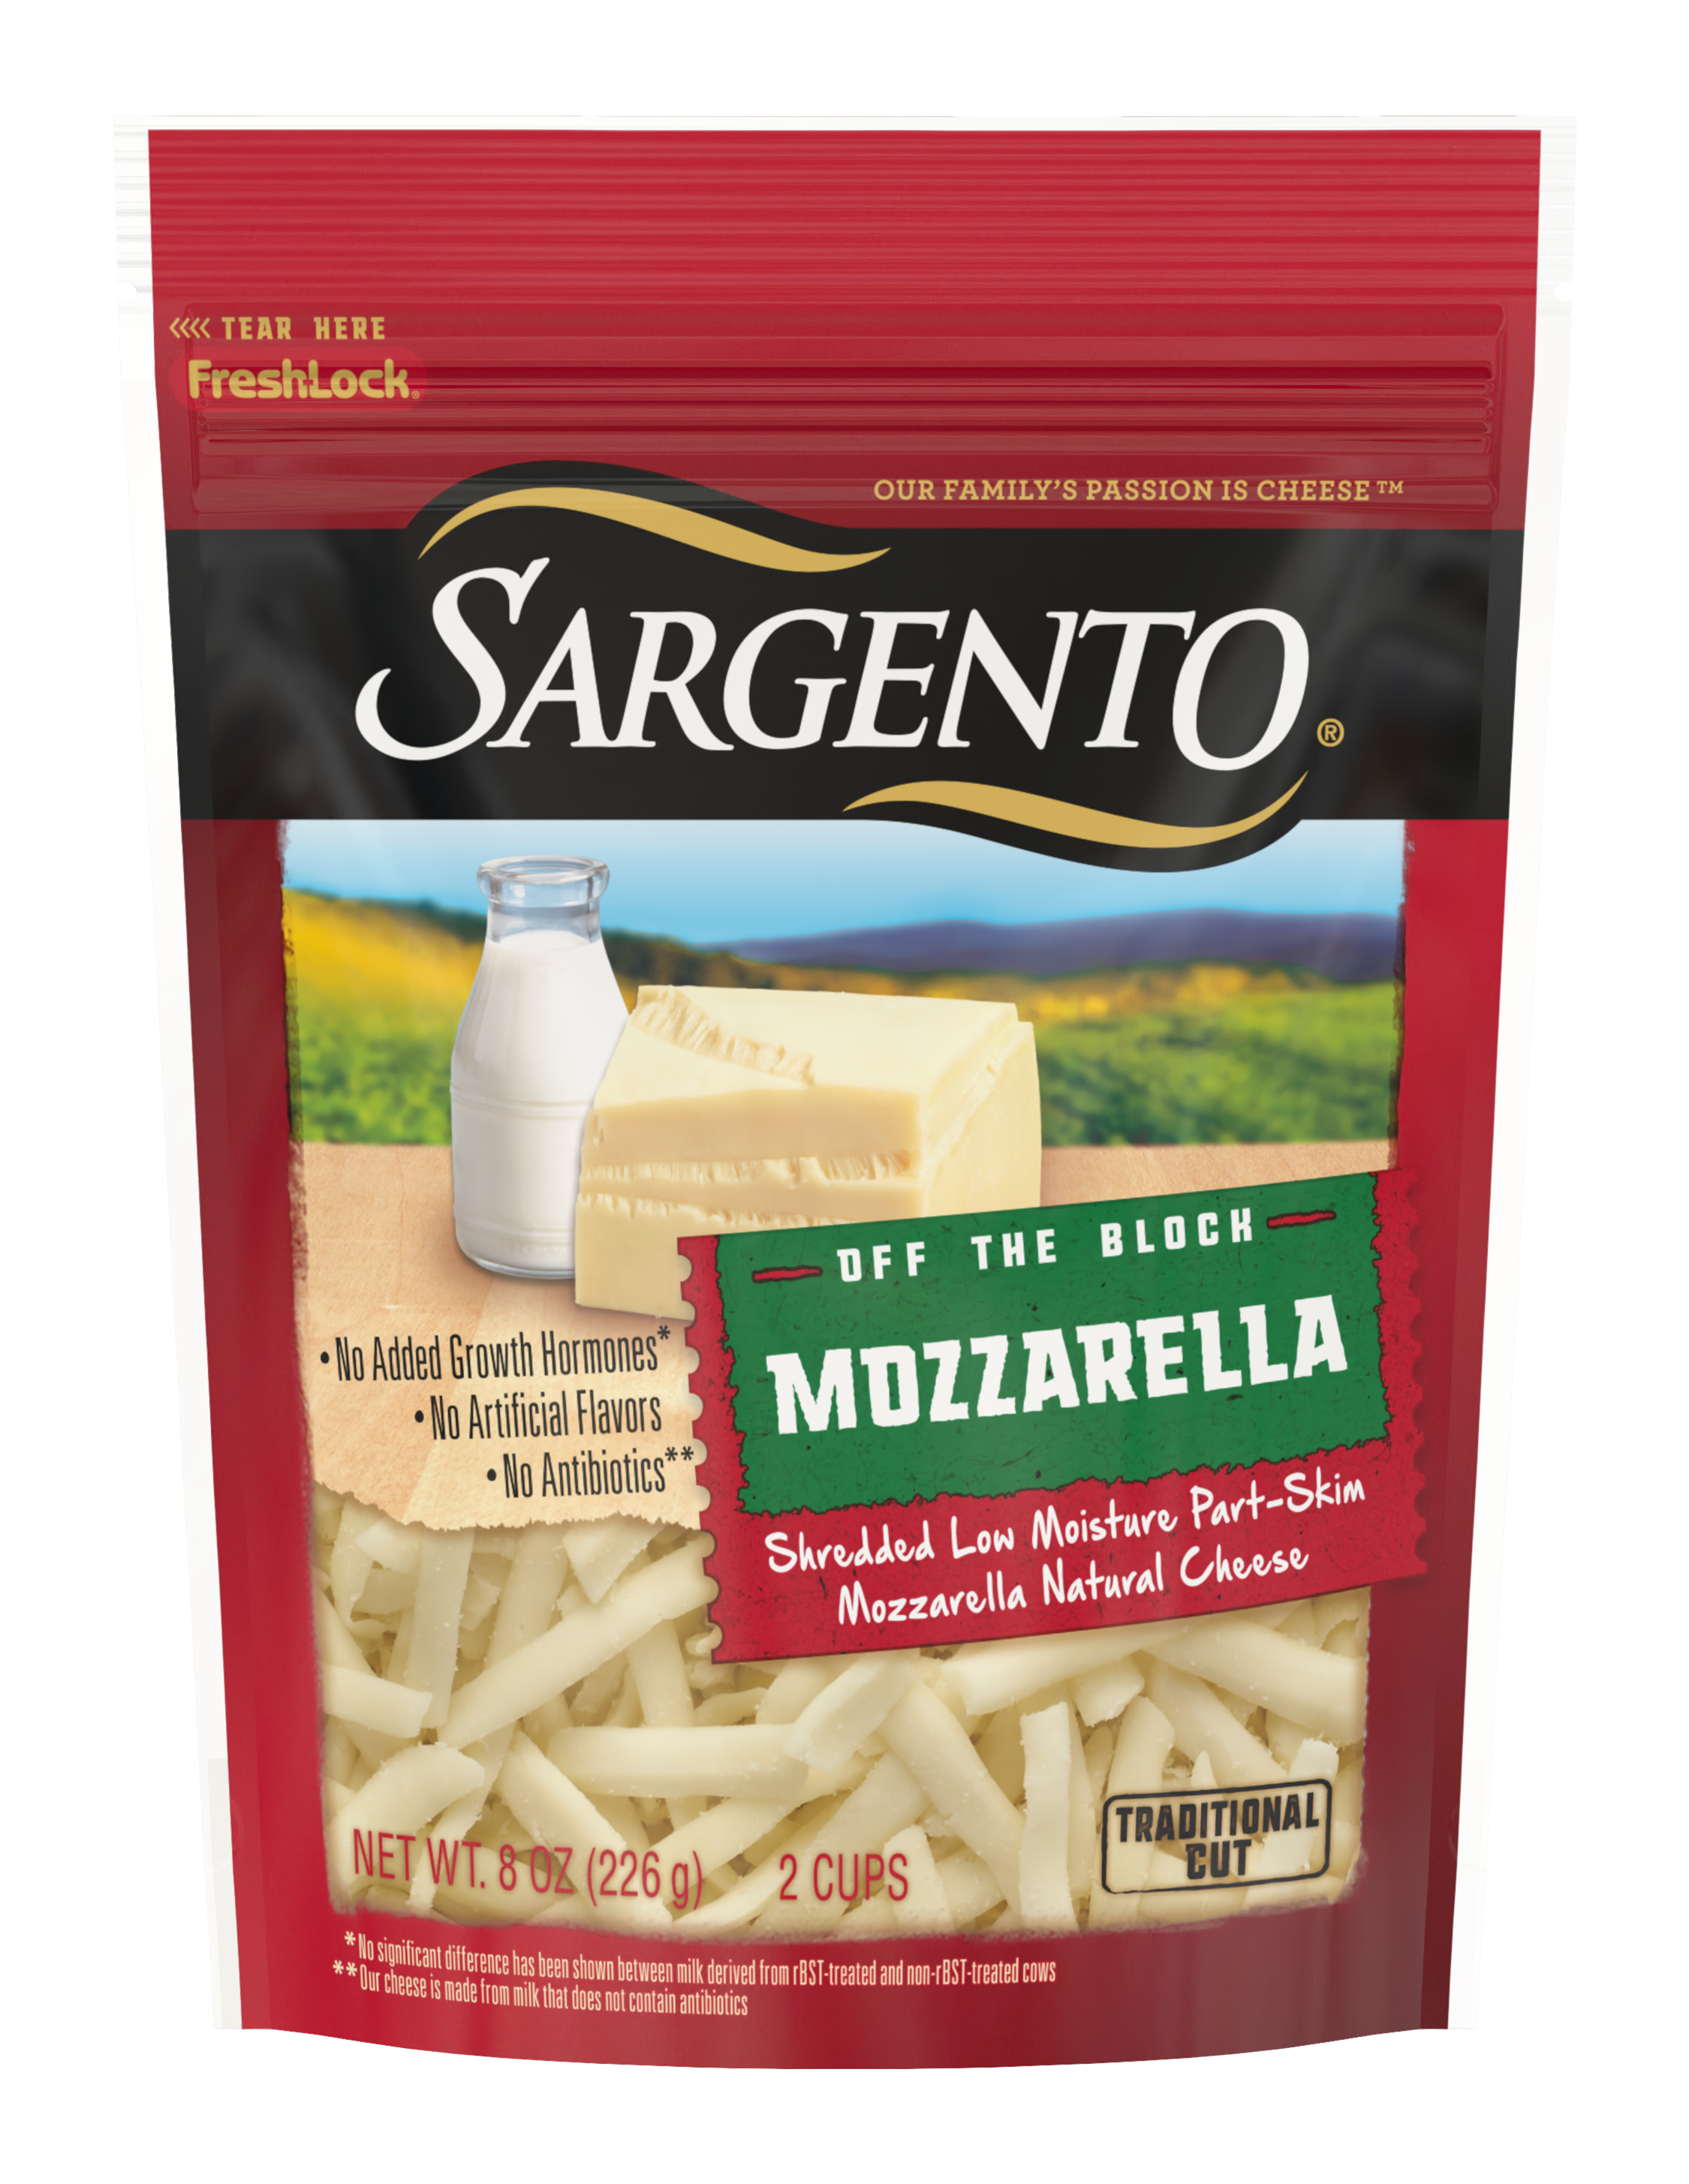 Sargento® Shredded Mozzarella Natural Cheese, Traditional Cut